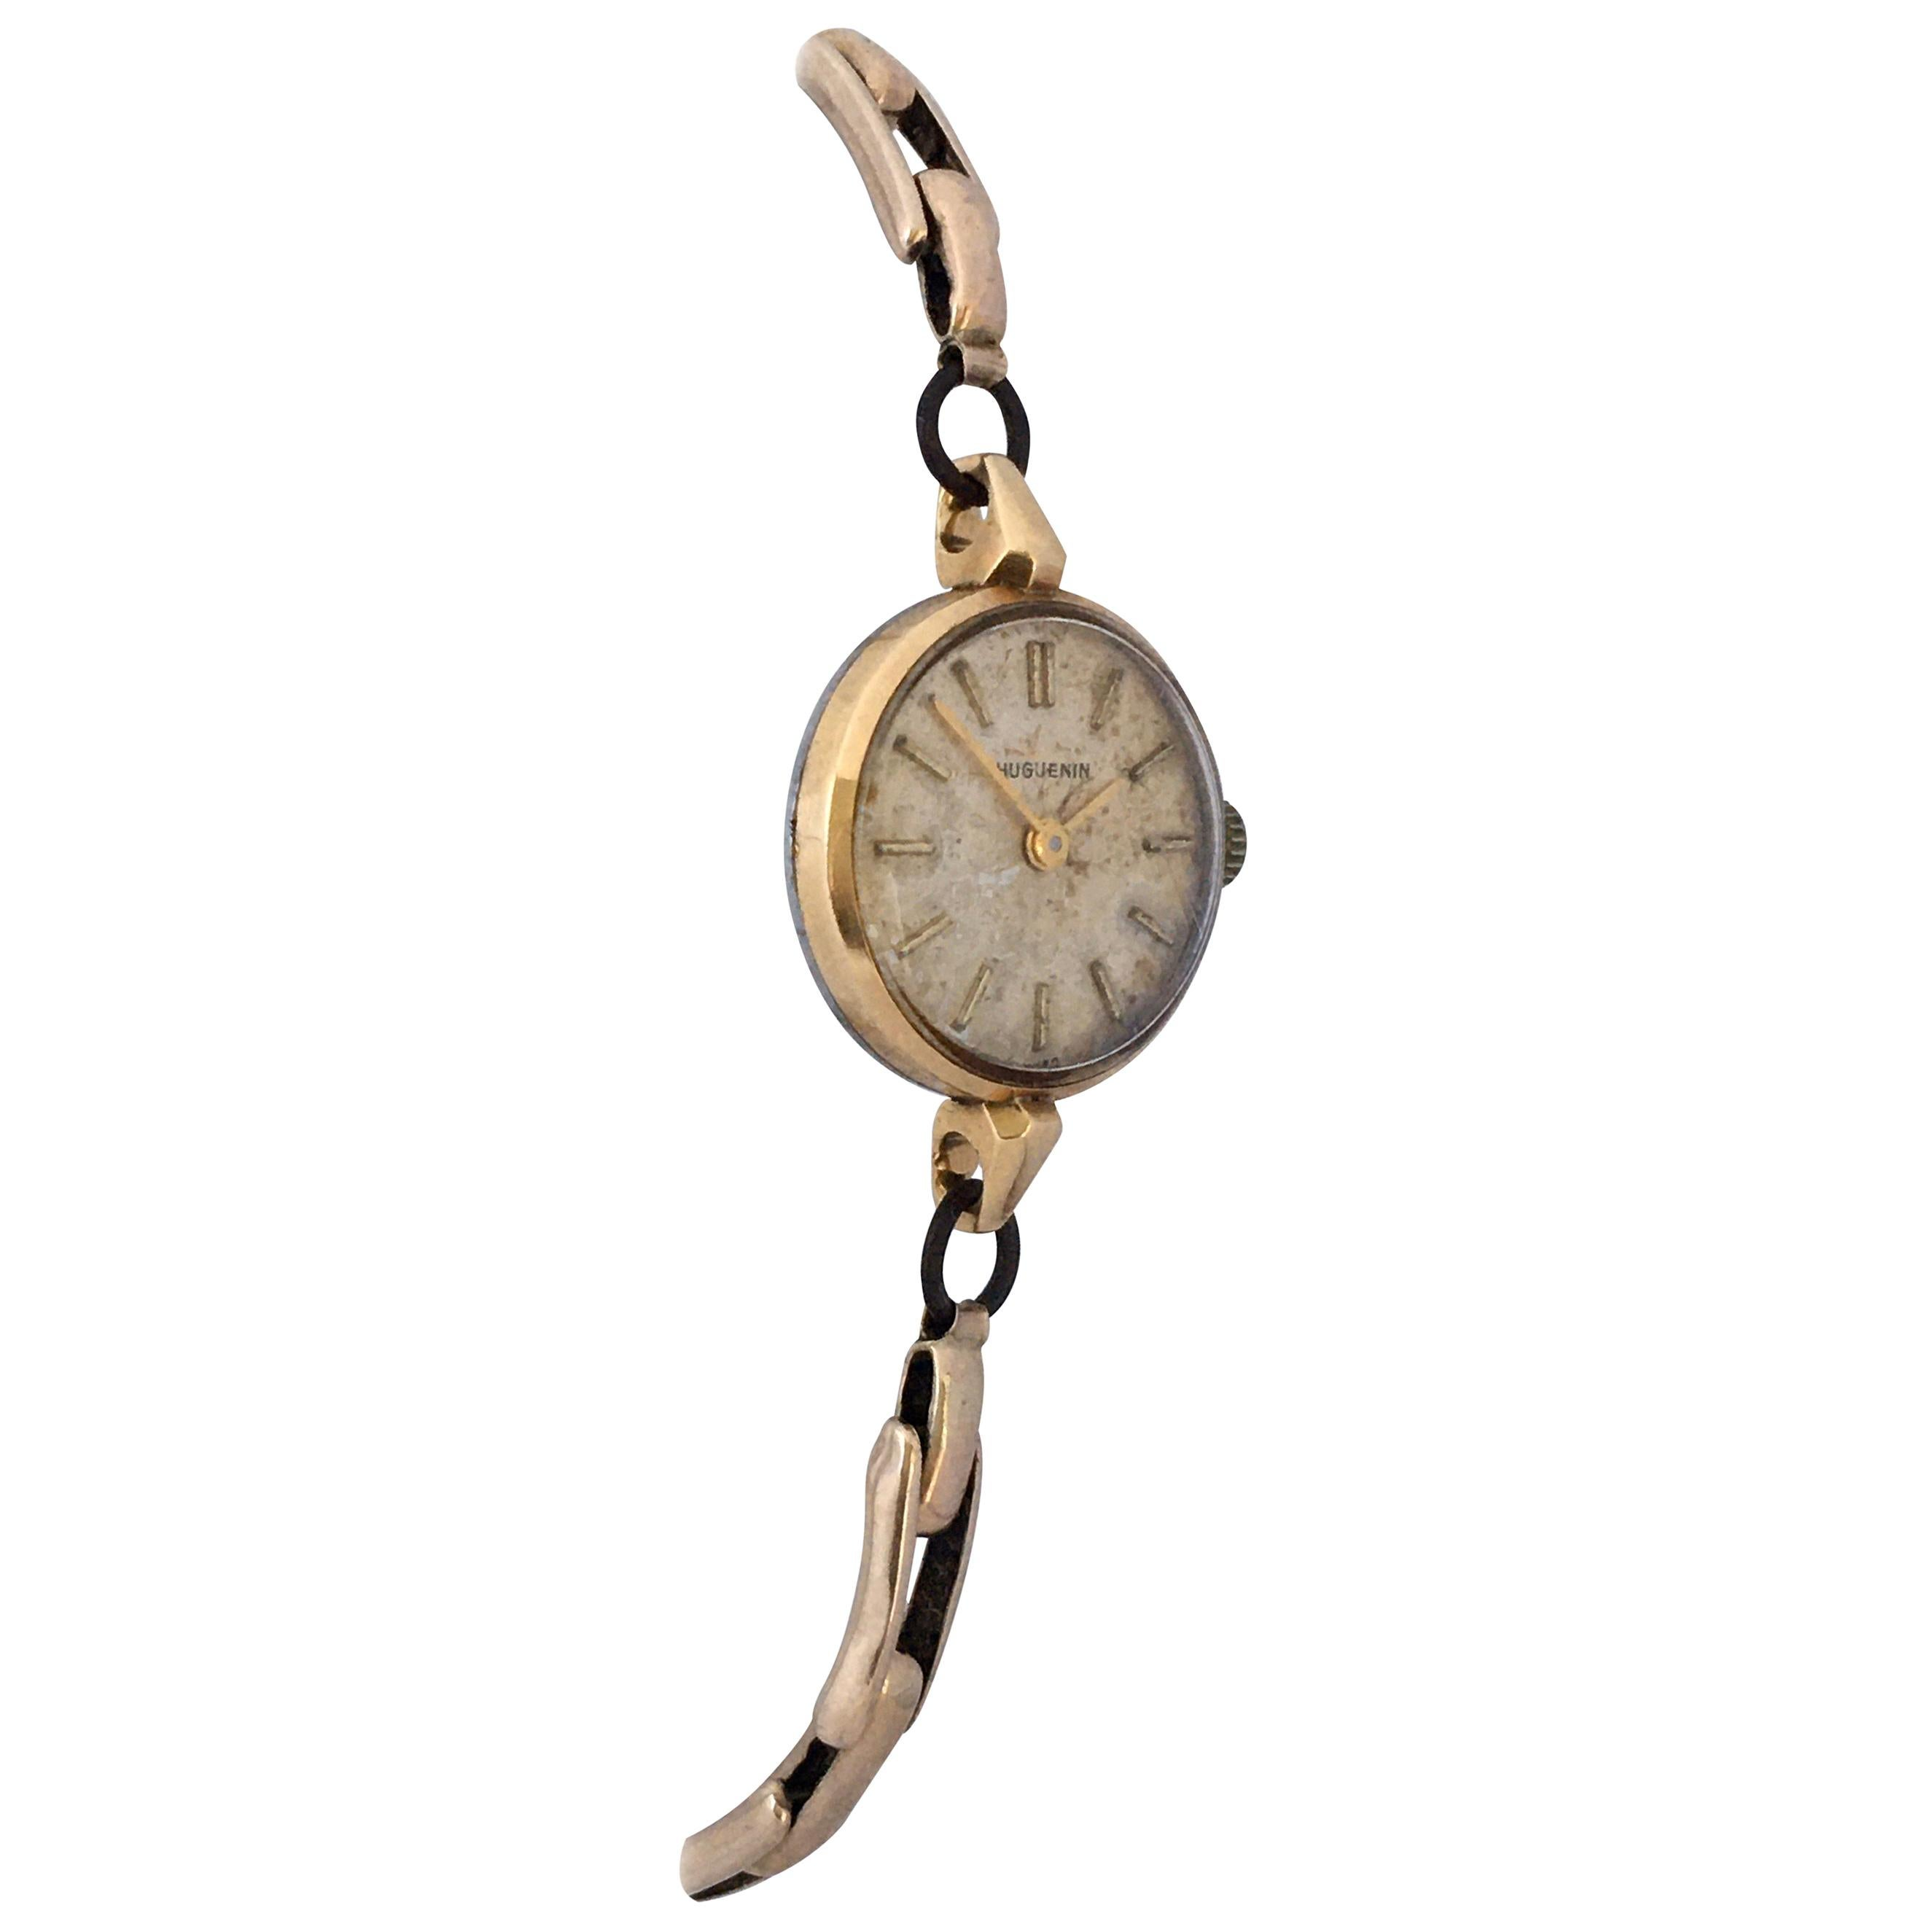 Vintage 1960s Ladies Gold-Filled Mechanical Watch